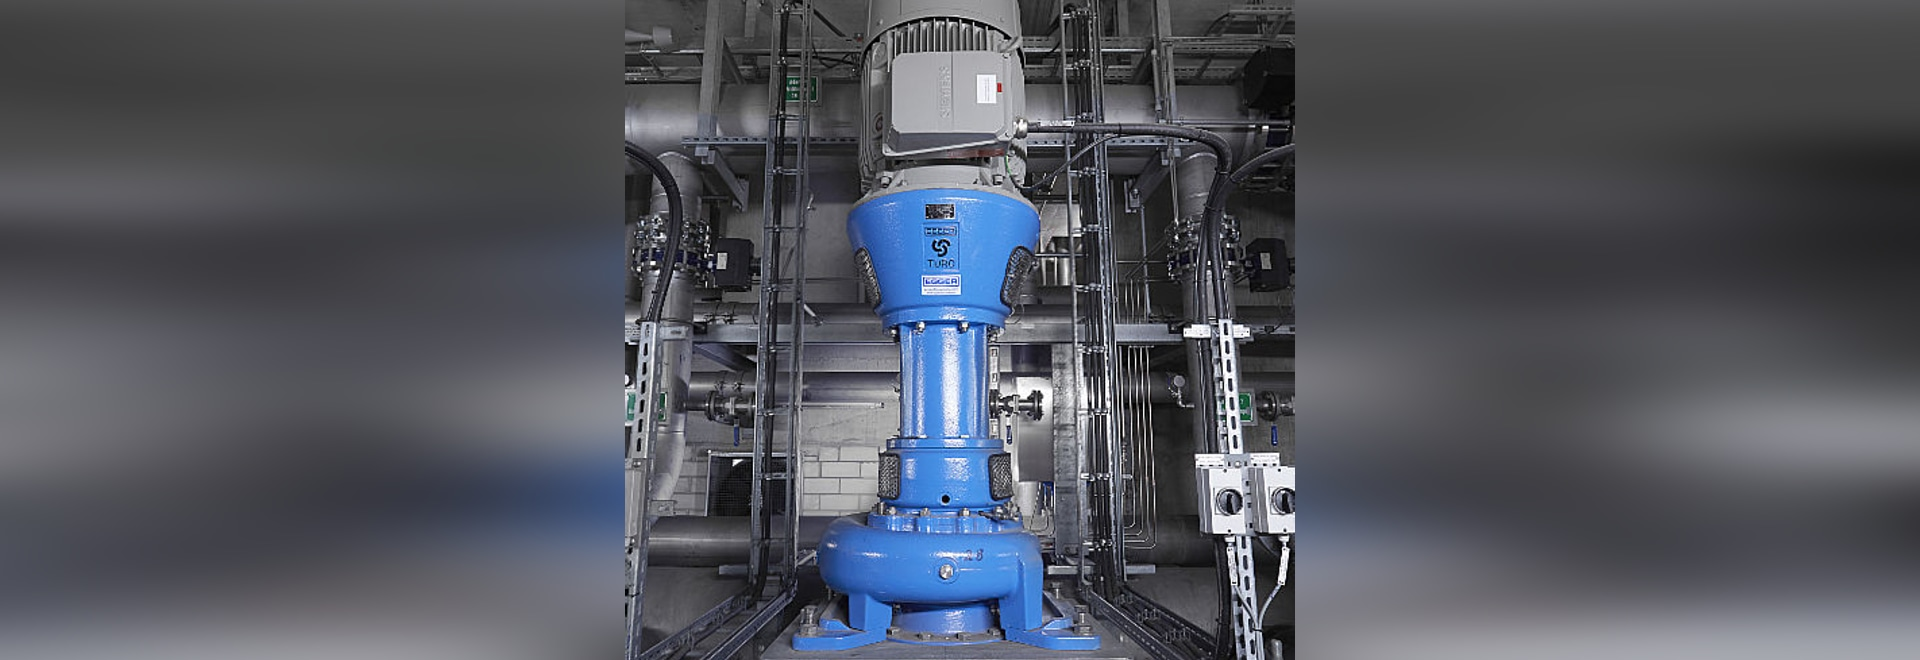 Egger Pumps for Rolling Mill in Germany